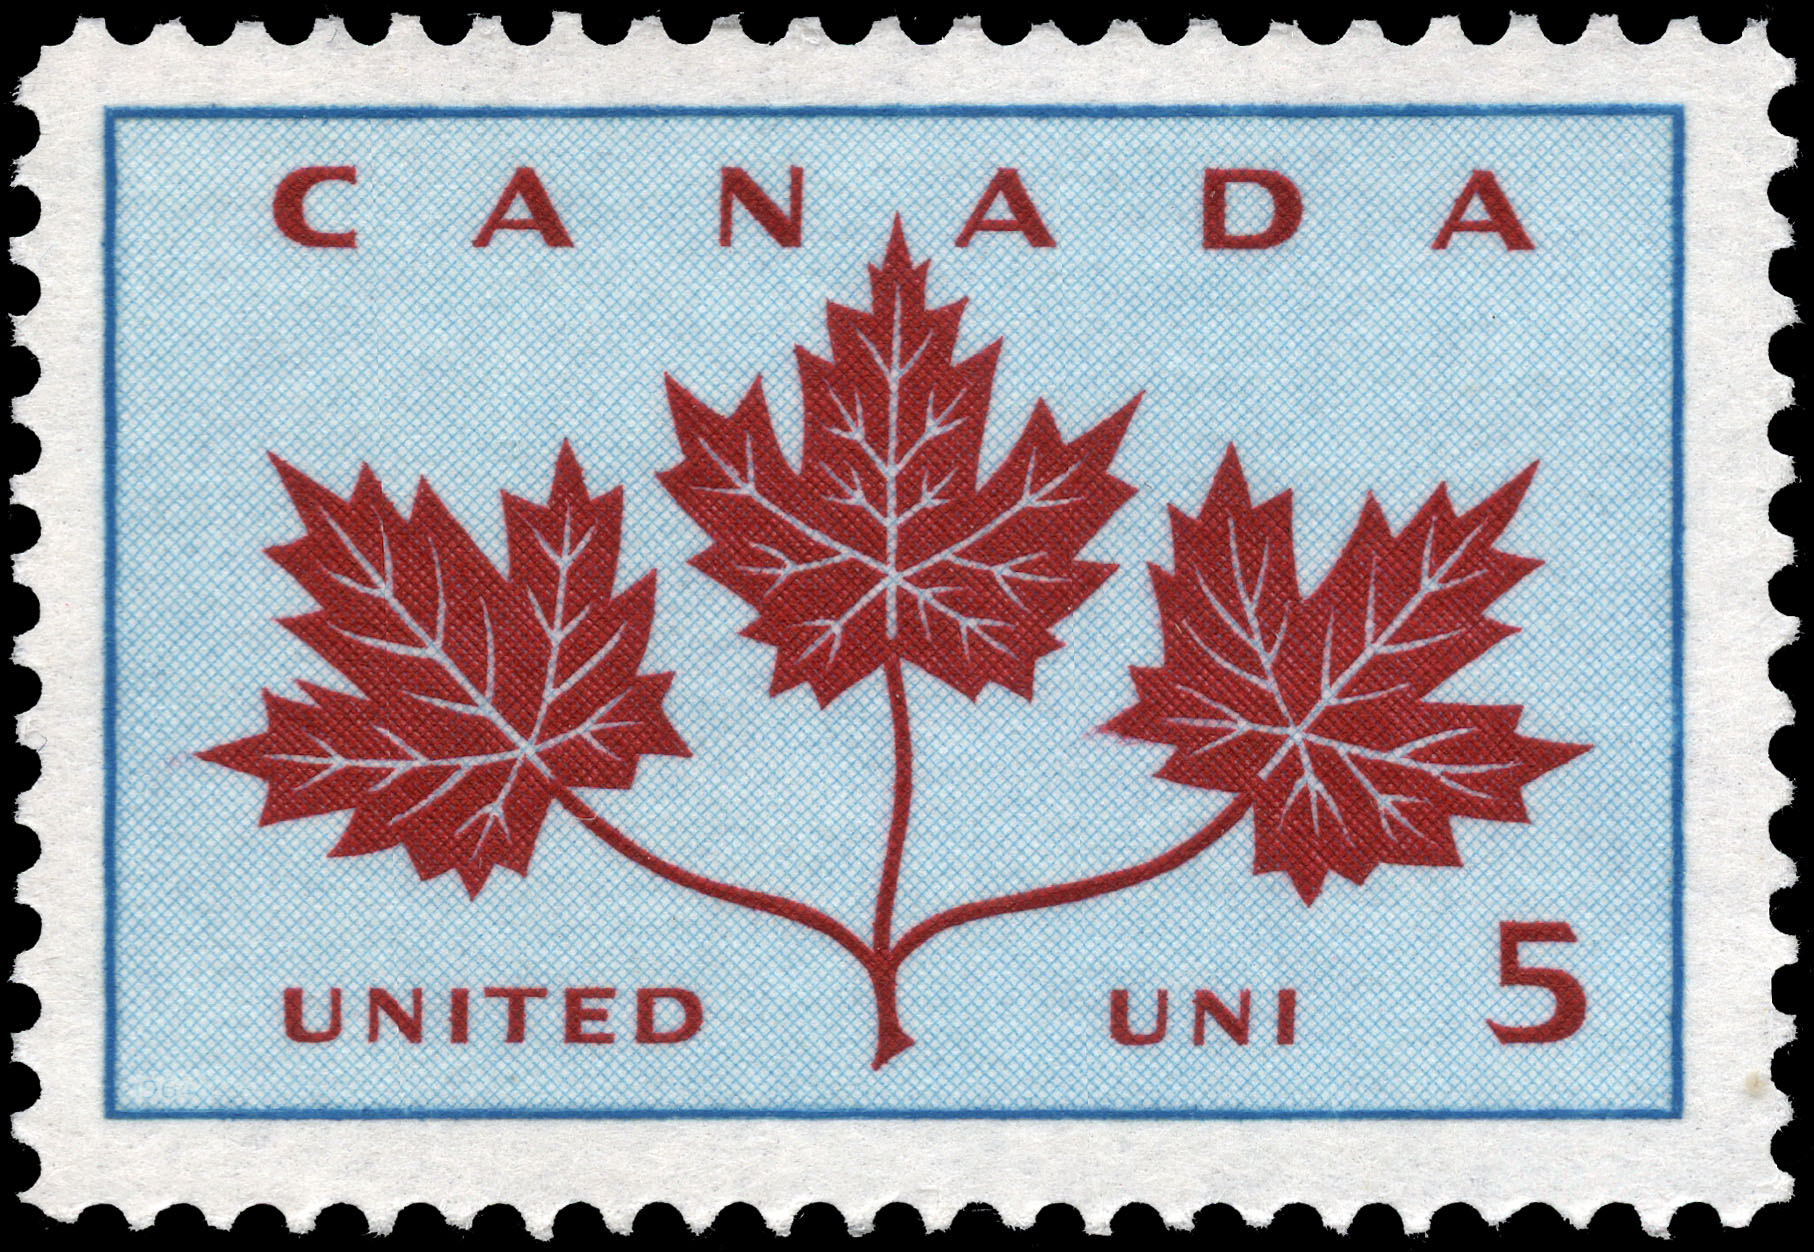 United Canada Postage Stamp